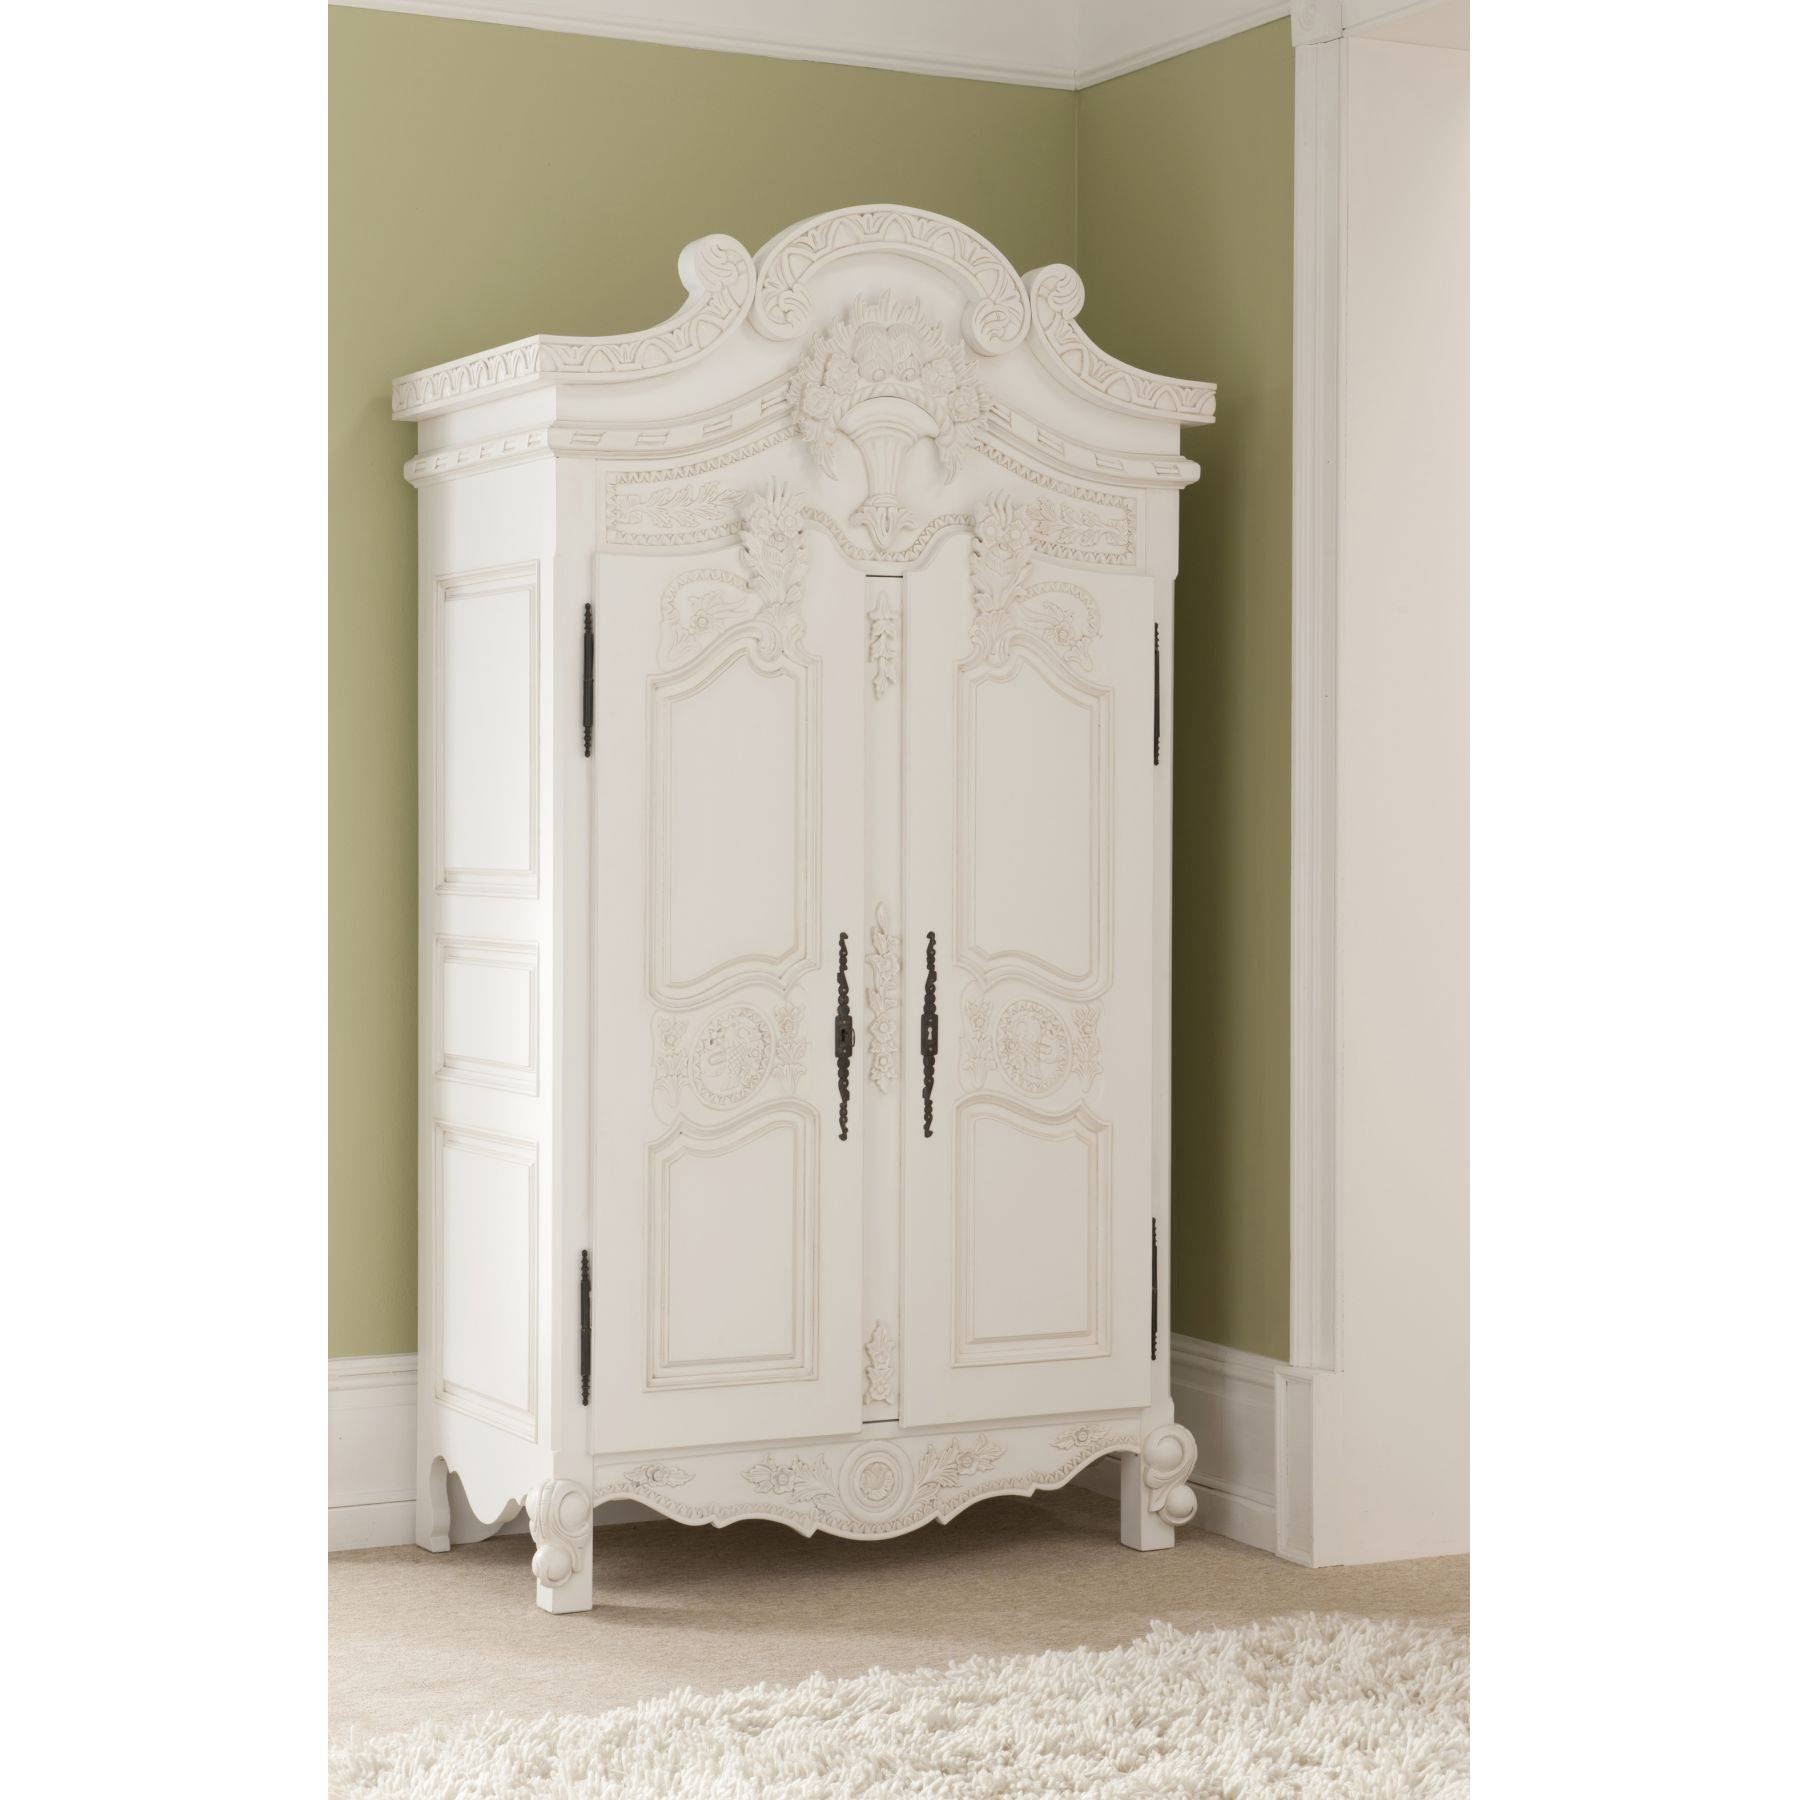 Rococo Antique French Wardrobe A Stunning Addition To Our Shabby throughout White French Wardrobes (Image 13 of 15)